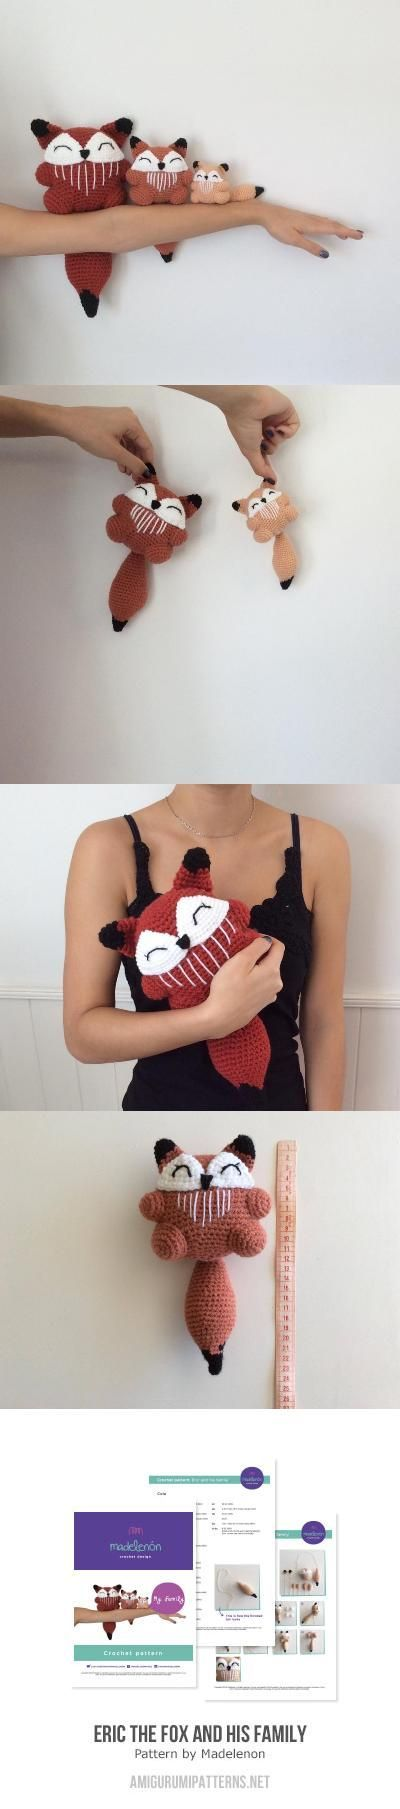 Eric The Fox And His Family Amigurumi Pattern